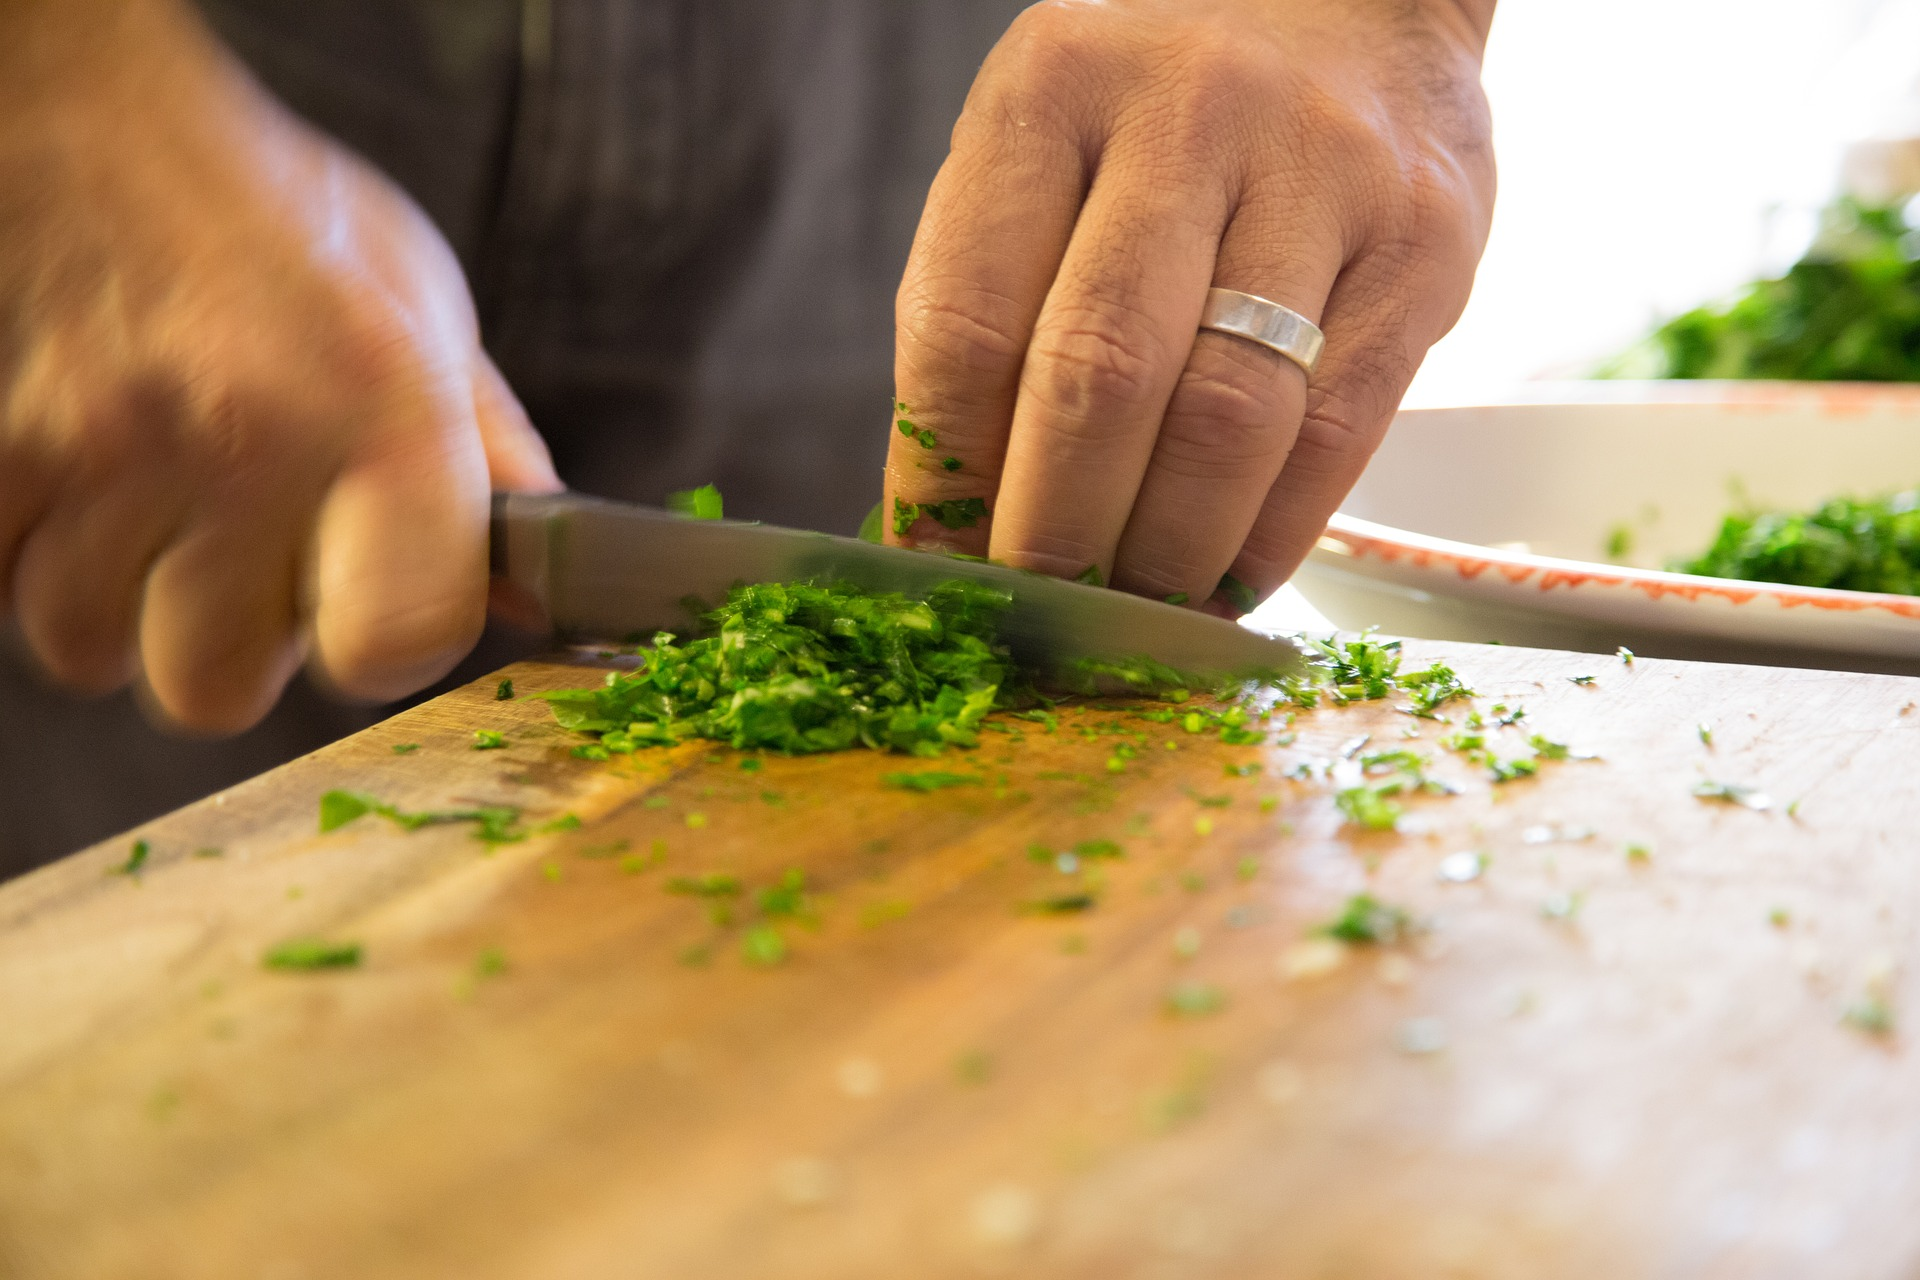 Hands cutting herbs on cutting board